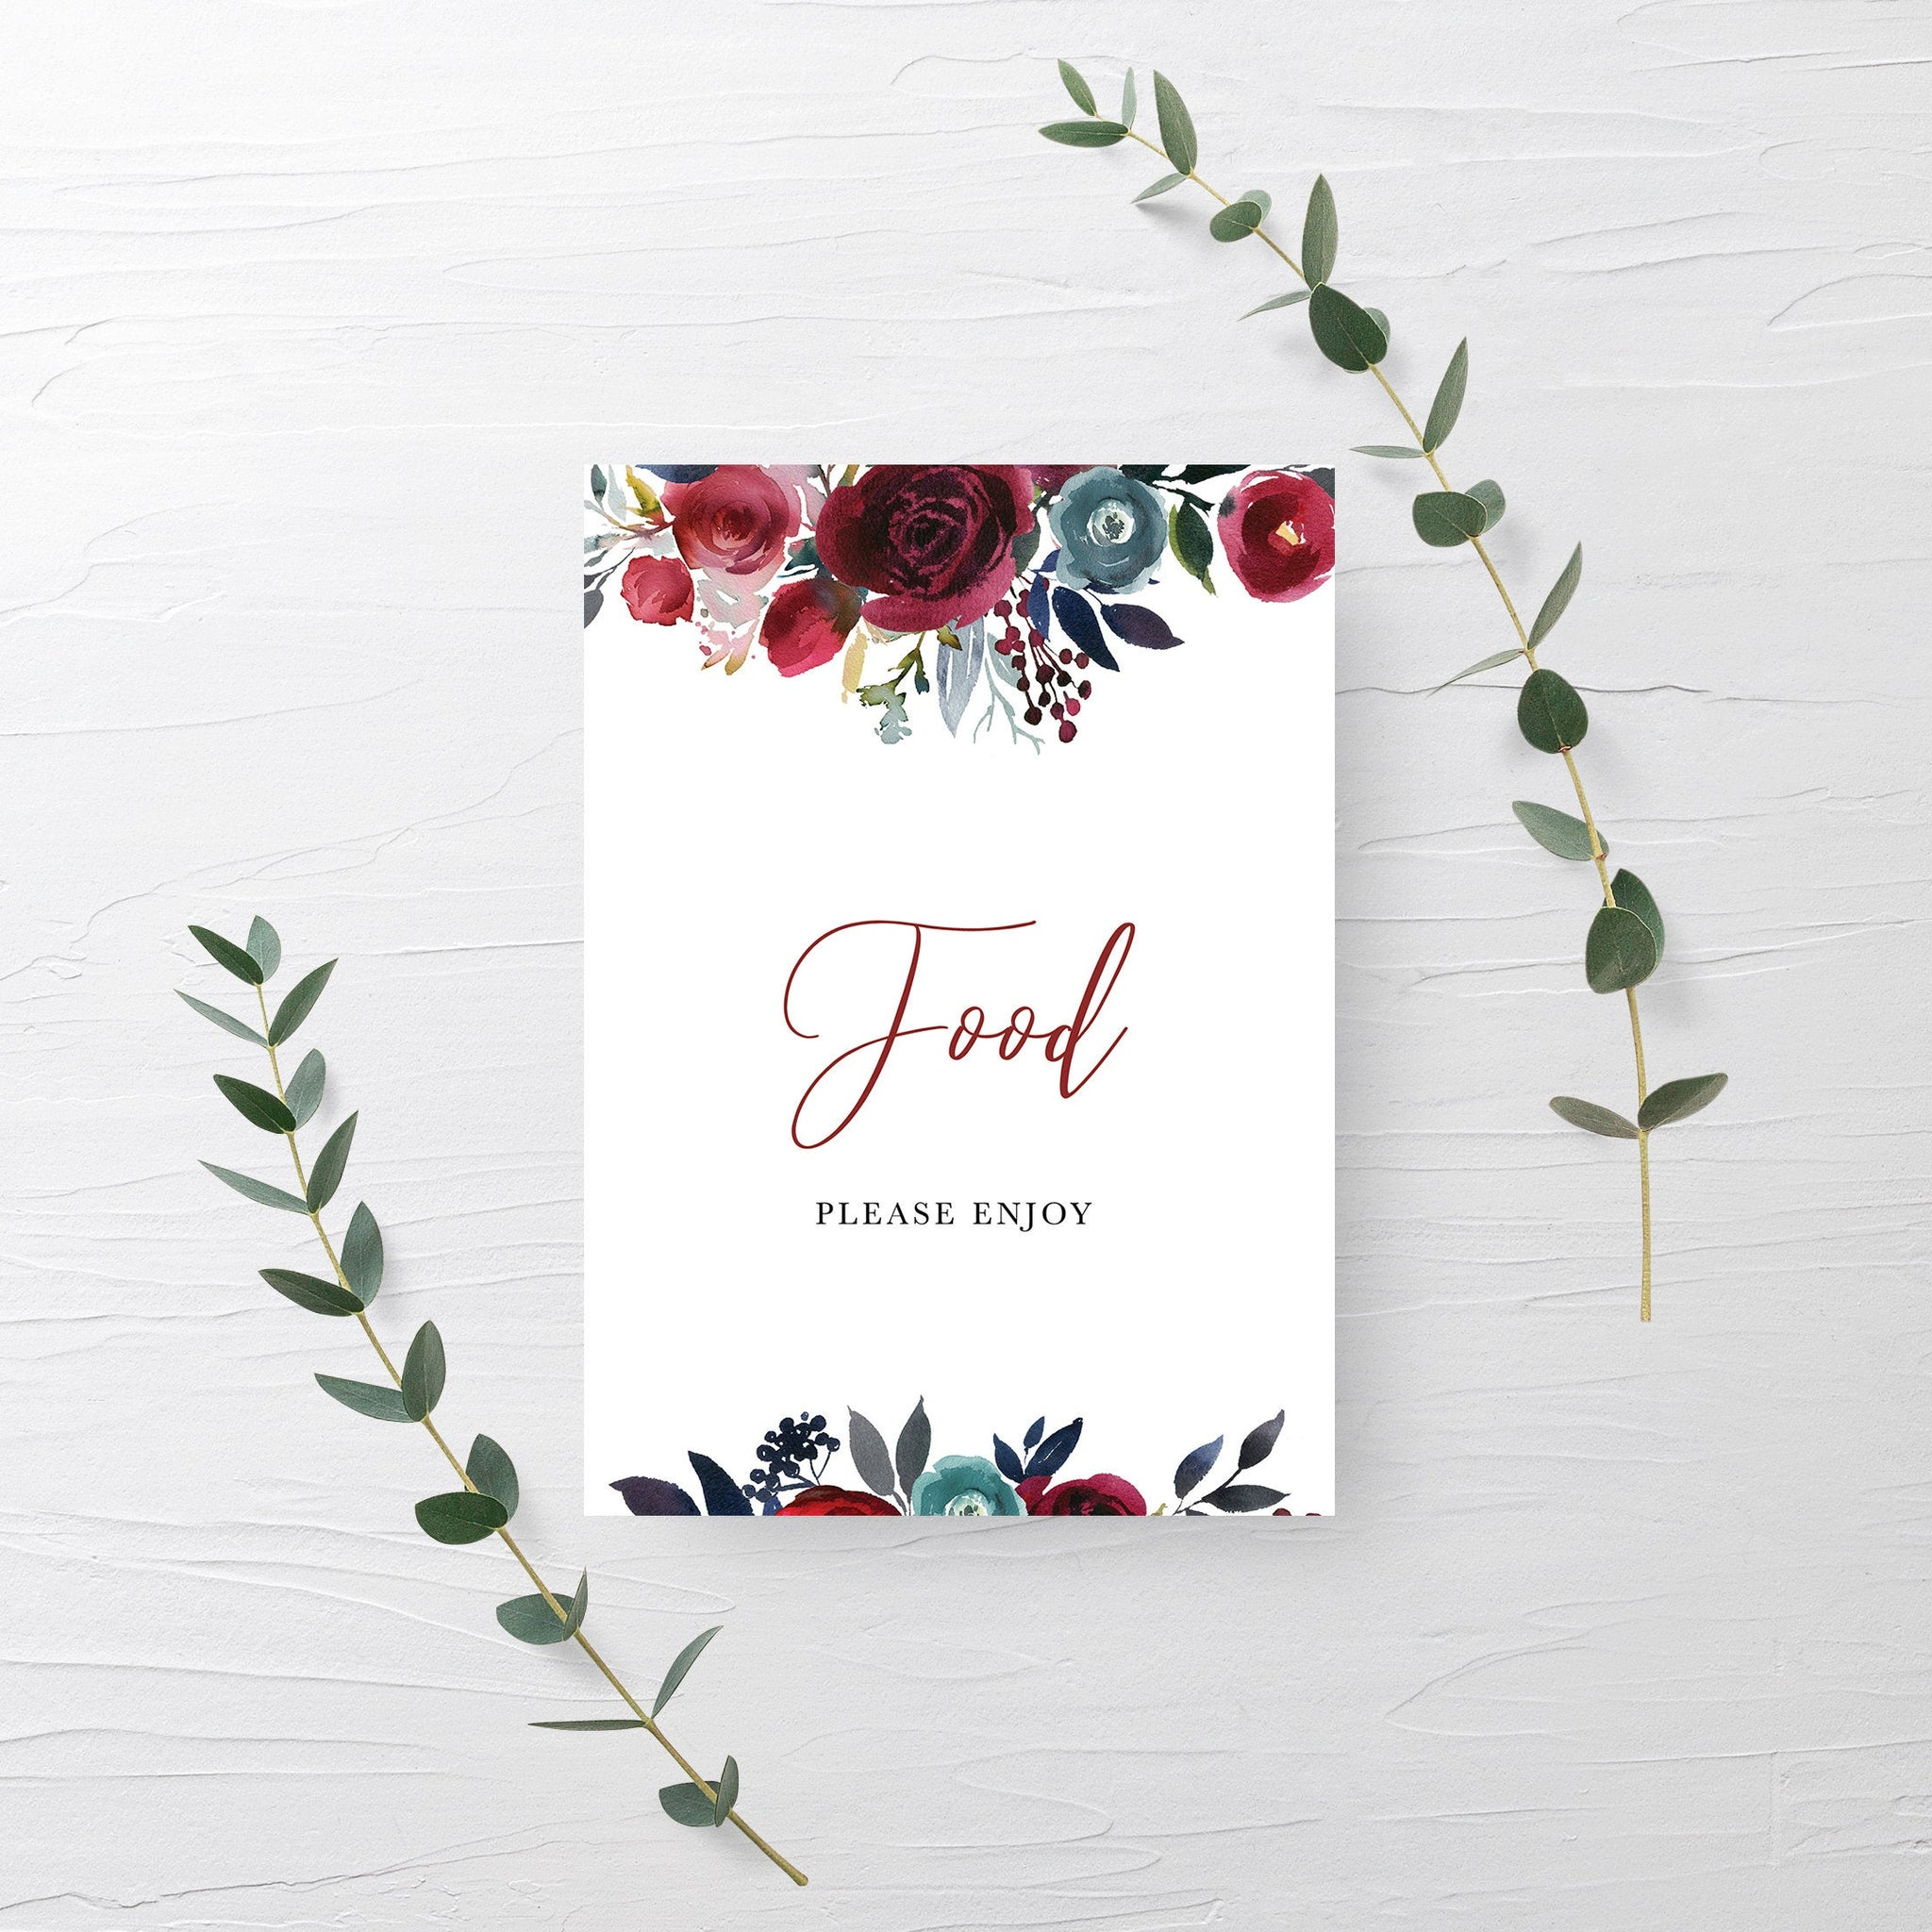 Burgundy Bridal Shower Decorations, Food Sign Printable, Navy and Burgundy Wedding, INSTANT DOWNLOAD - BB100 - @PlumPolkaDot